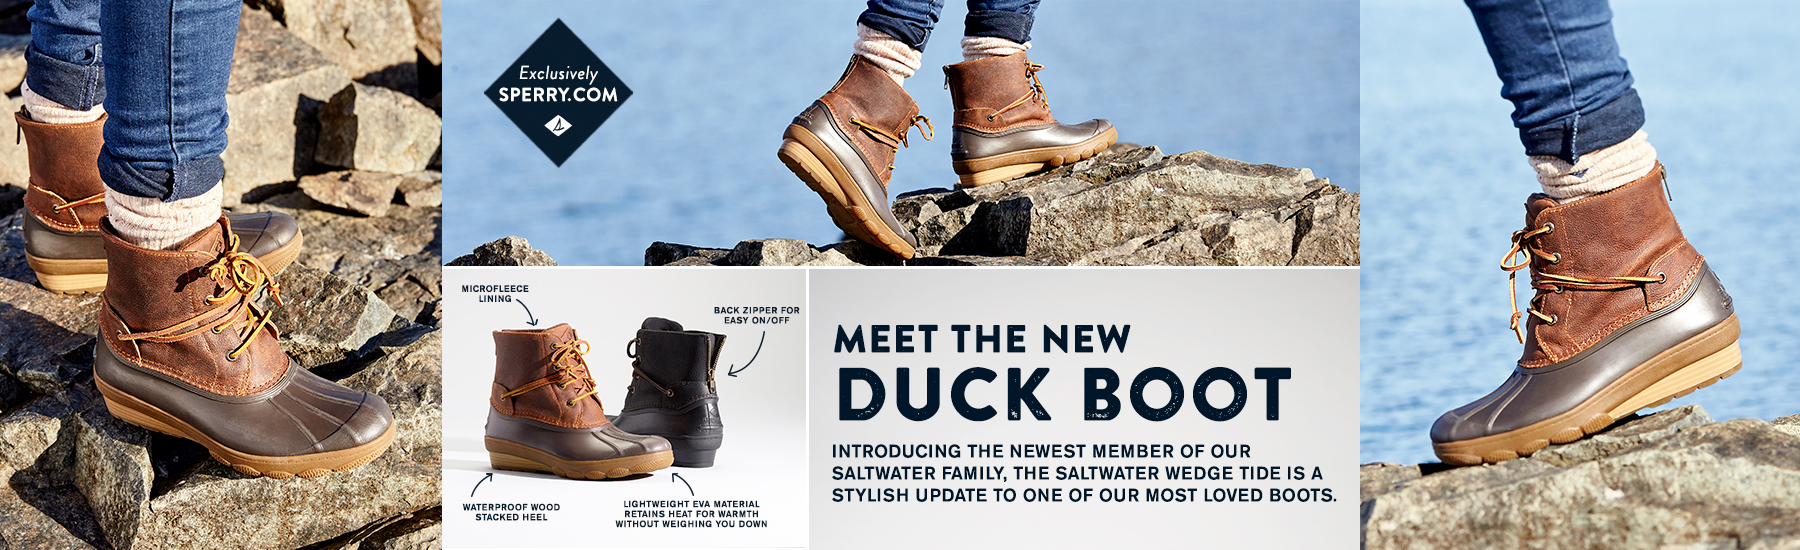 Meet the new Duck Boot. Introducing the newest member of our Saltwater family, the Saltwater Wedge Tide is a stylish update to one of our most loved boots.